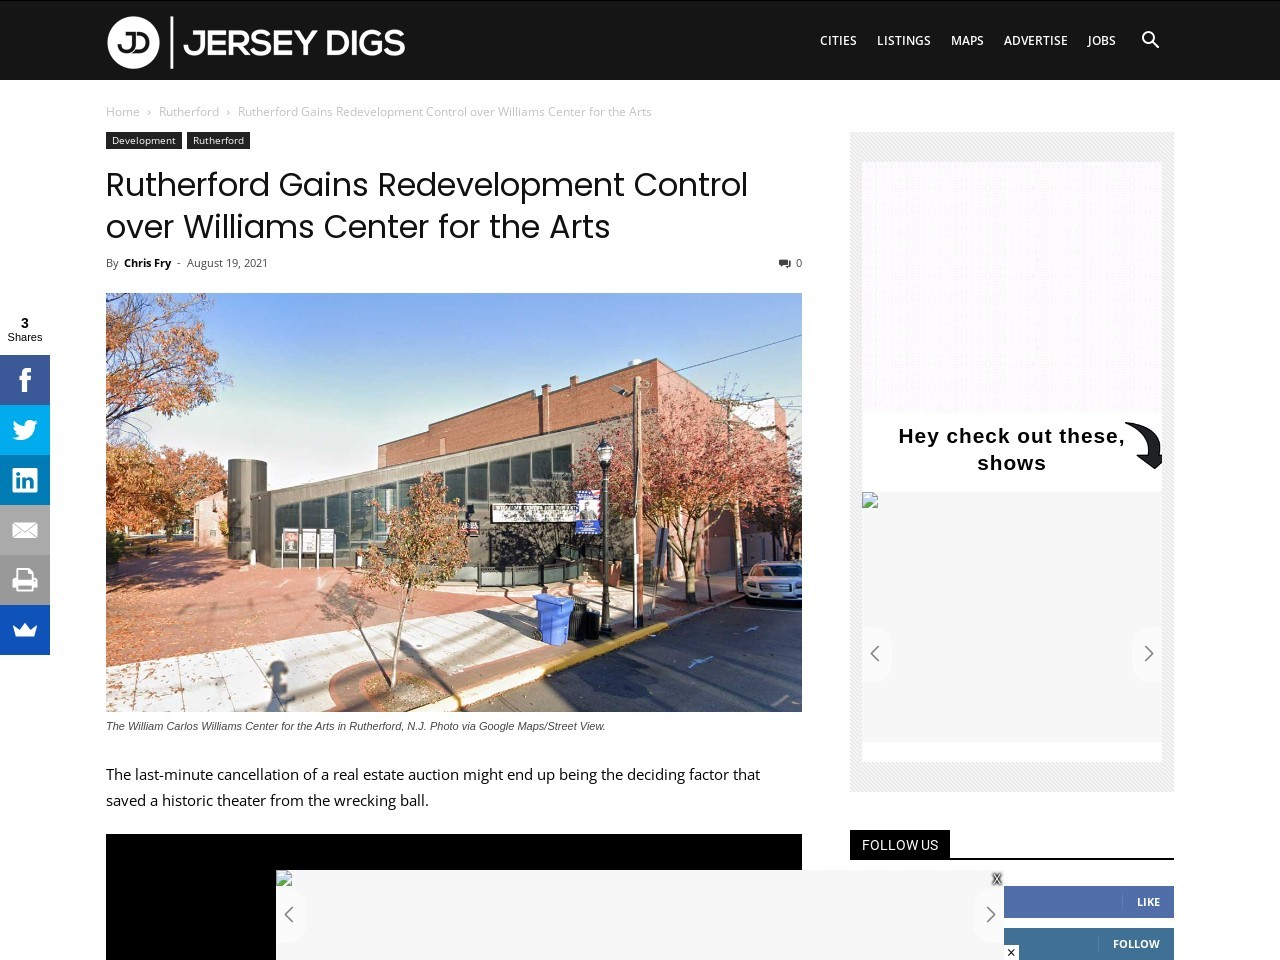 Rutherford Gains Redevelopment Control over Williams Center for the Arts